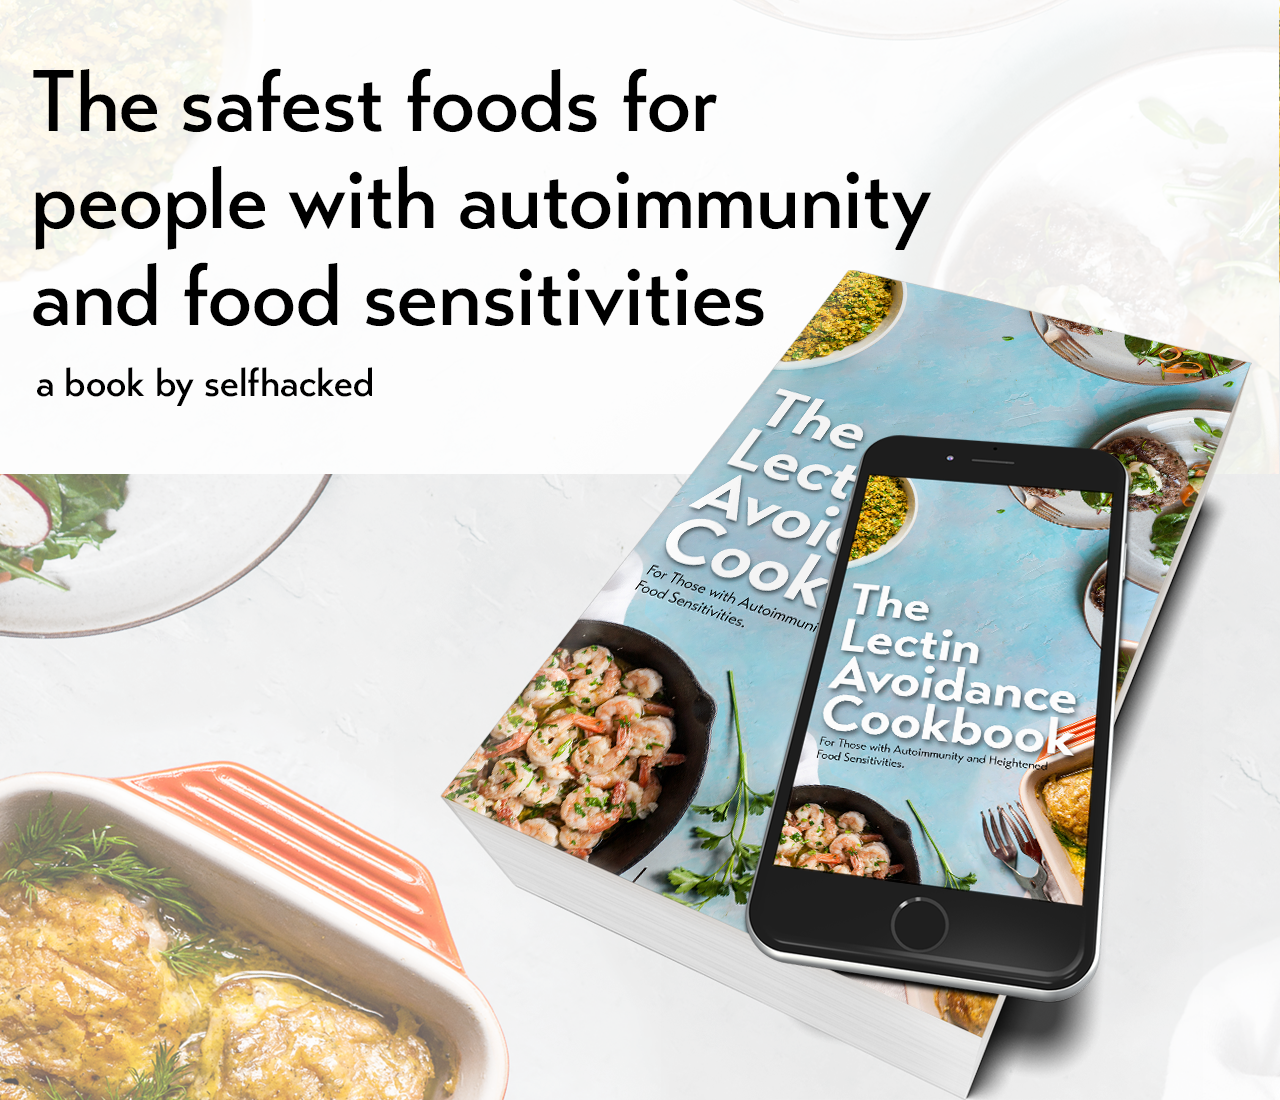 The lectin avoidance cookbook the safest foods for people with why make a cookbook forumfinder Image collections